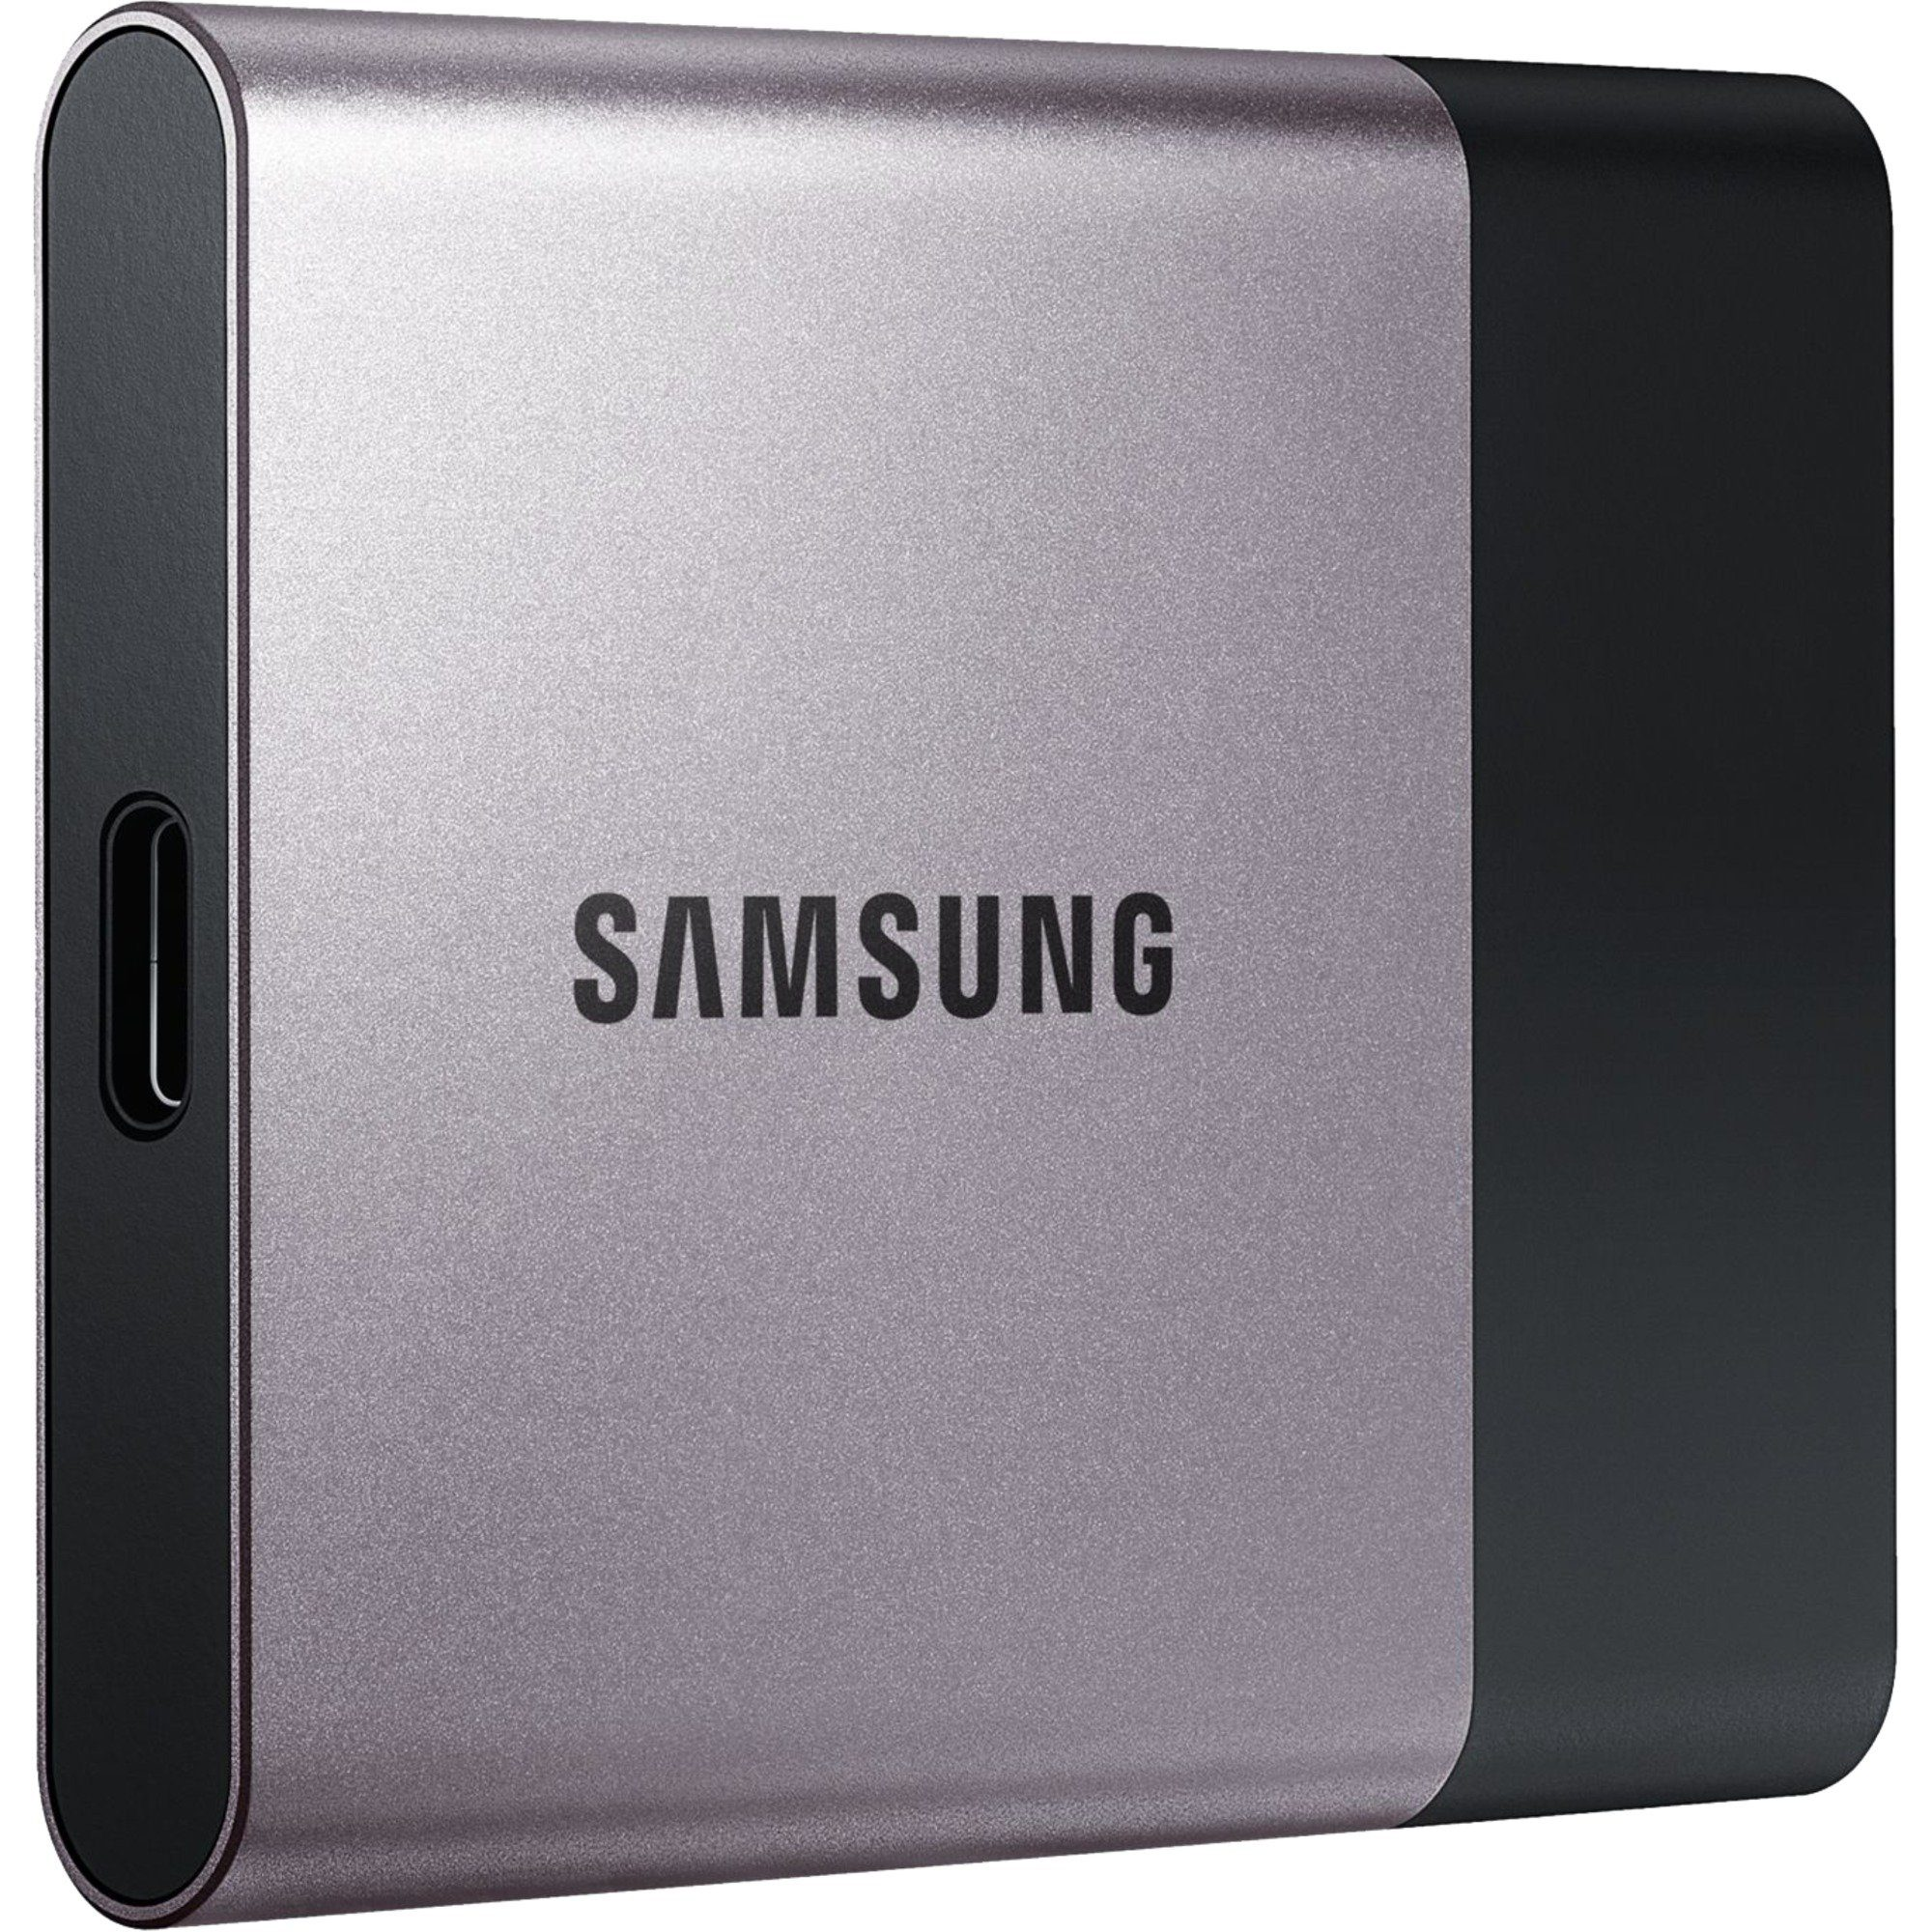 Samsung Solid State Drive »SSD 2TB Portable T3 USB3.1 Gen1«